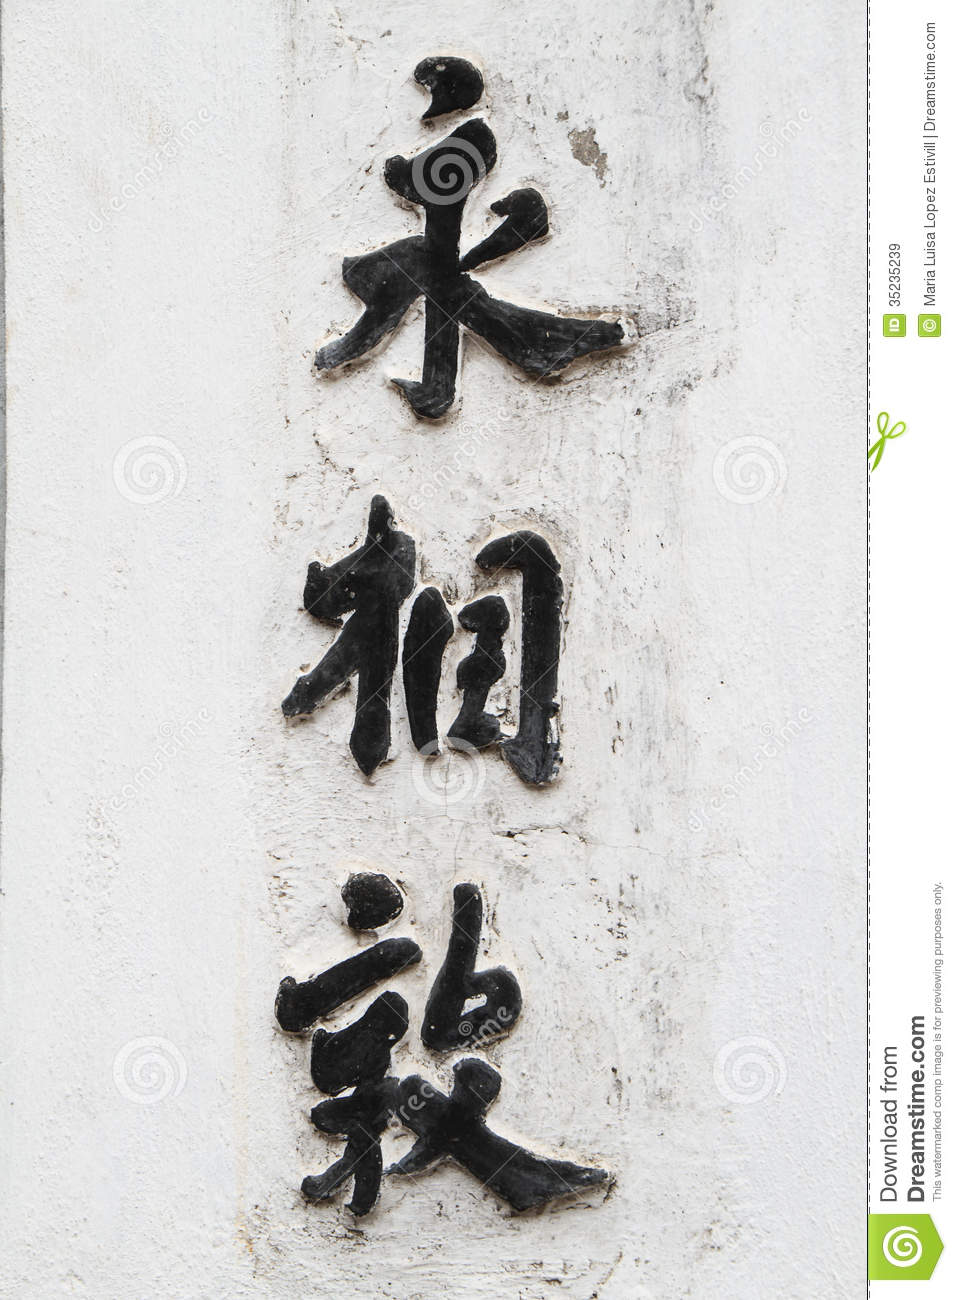 Asian Letters Royalty Free Stock Images - Image: 35235239